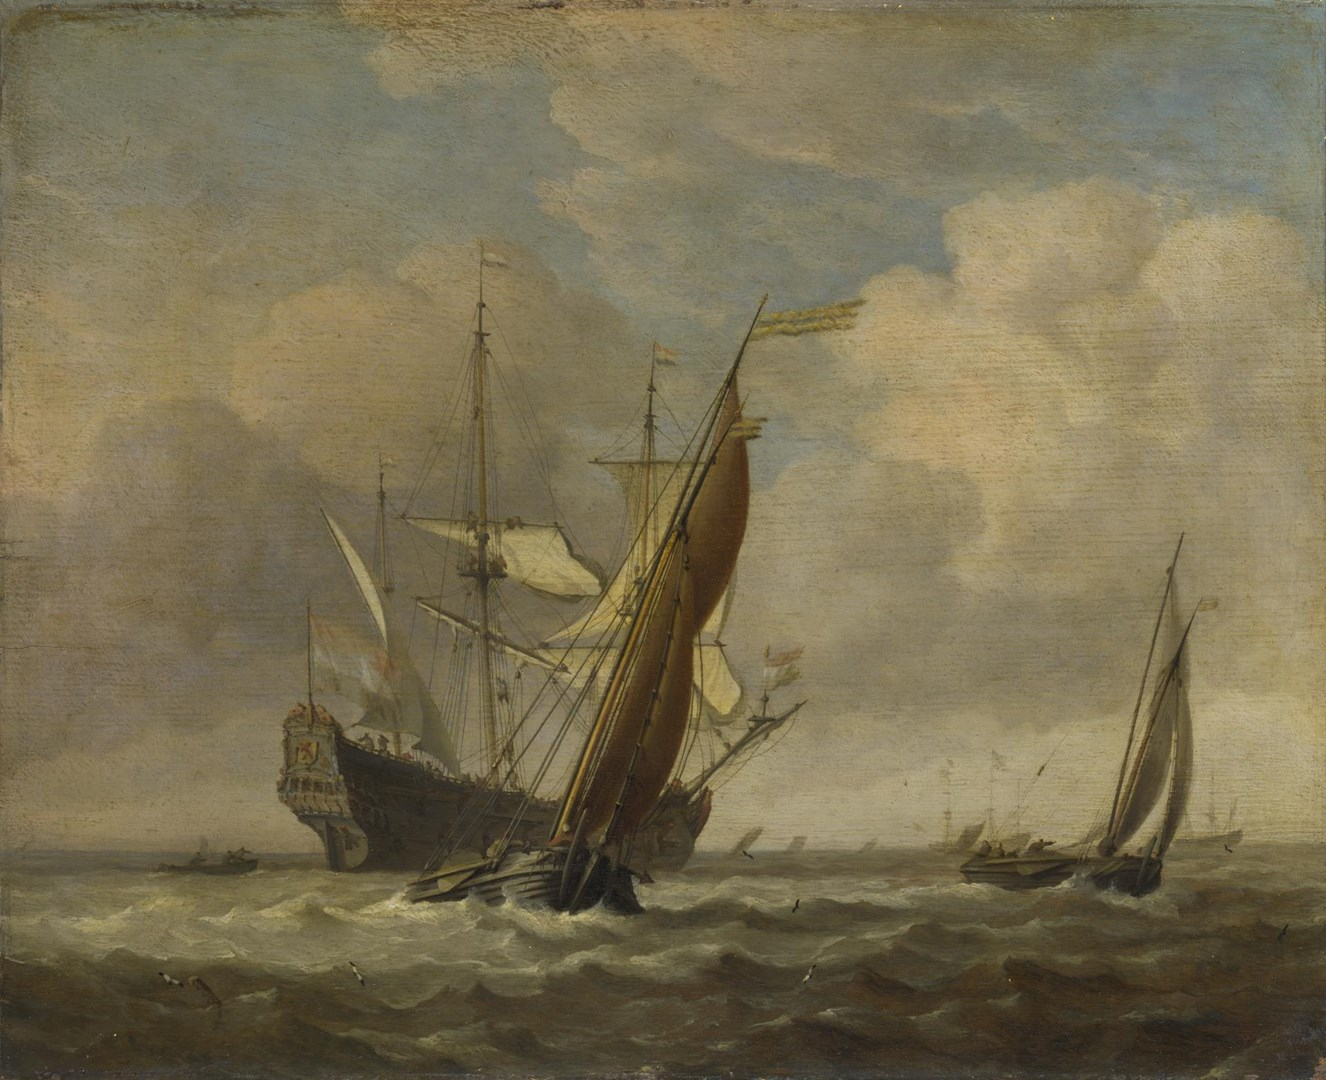 Two Small Vessels and a Dutch Man-of-War in a Breeze by Willem van de Velde